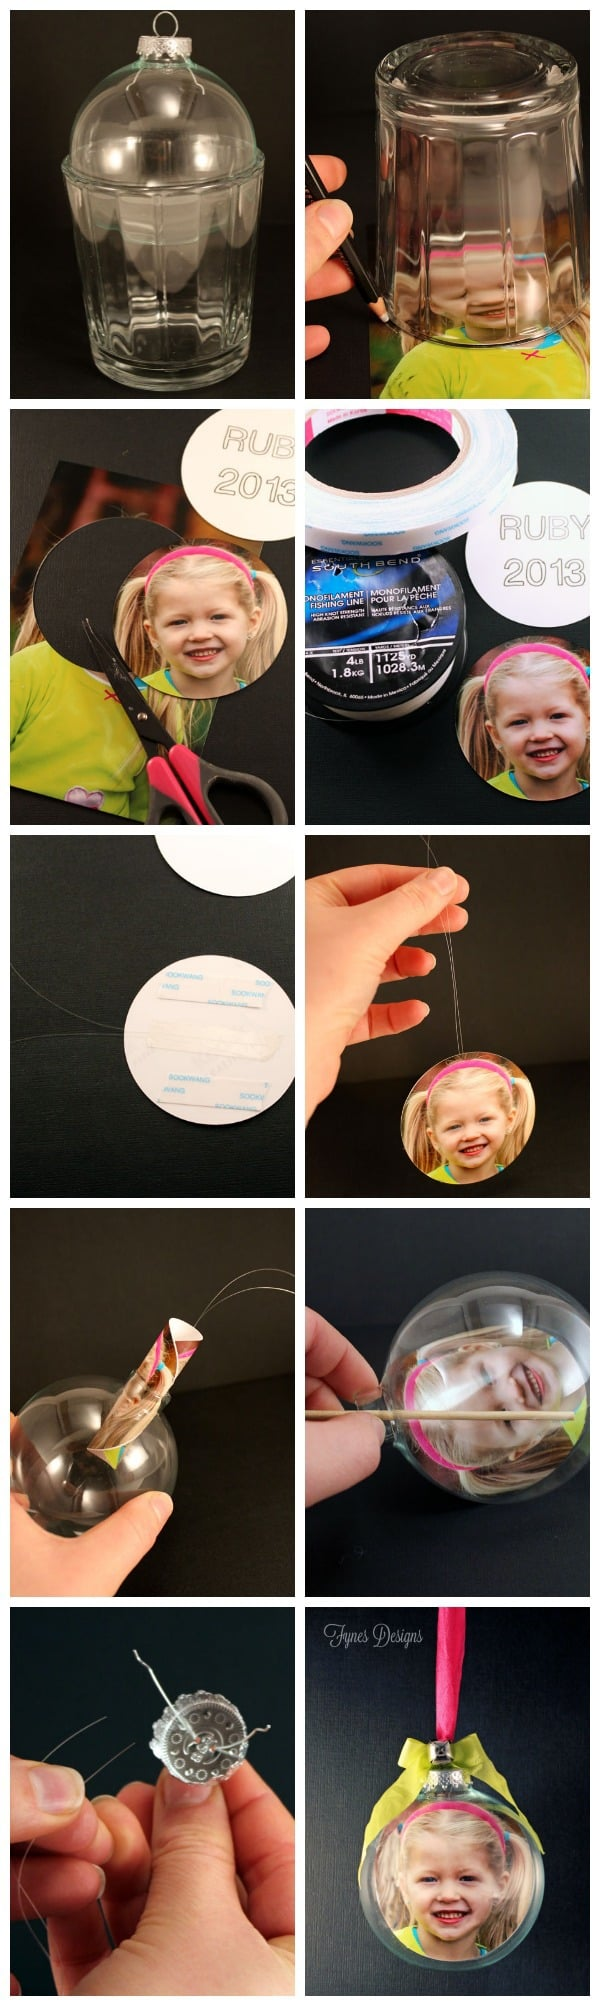 DIY Glass Photo Ornament, a tutorial featured by top US life and style blog, Fynes Designs:DIY personalized Glass Photo Ornaments. Make the perfect keepsake or gift! |Photo Ornaments by popular Canada DIY blog, Fynes Designs: collage image of a woman making DIY photo ornaments.